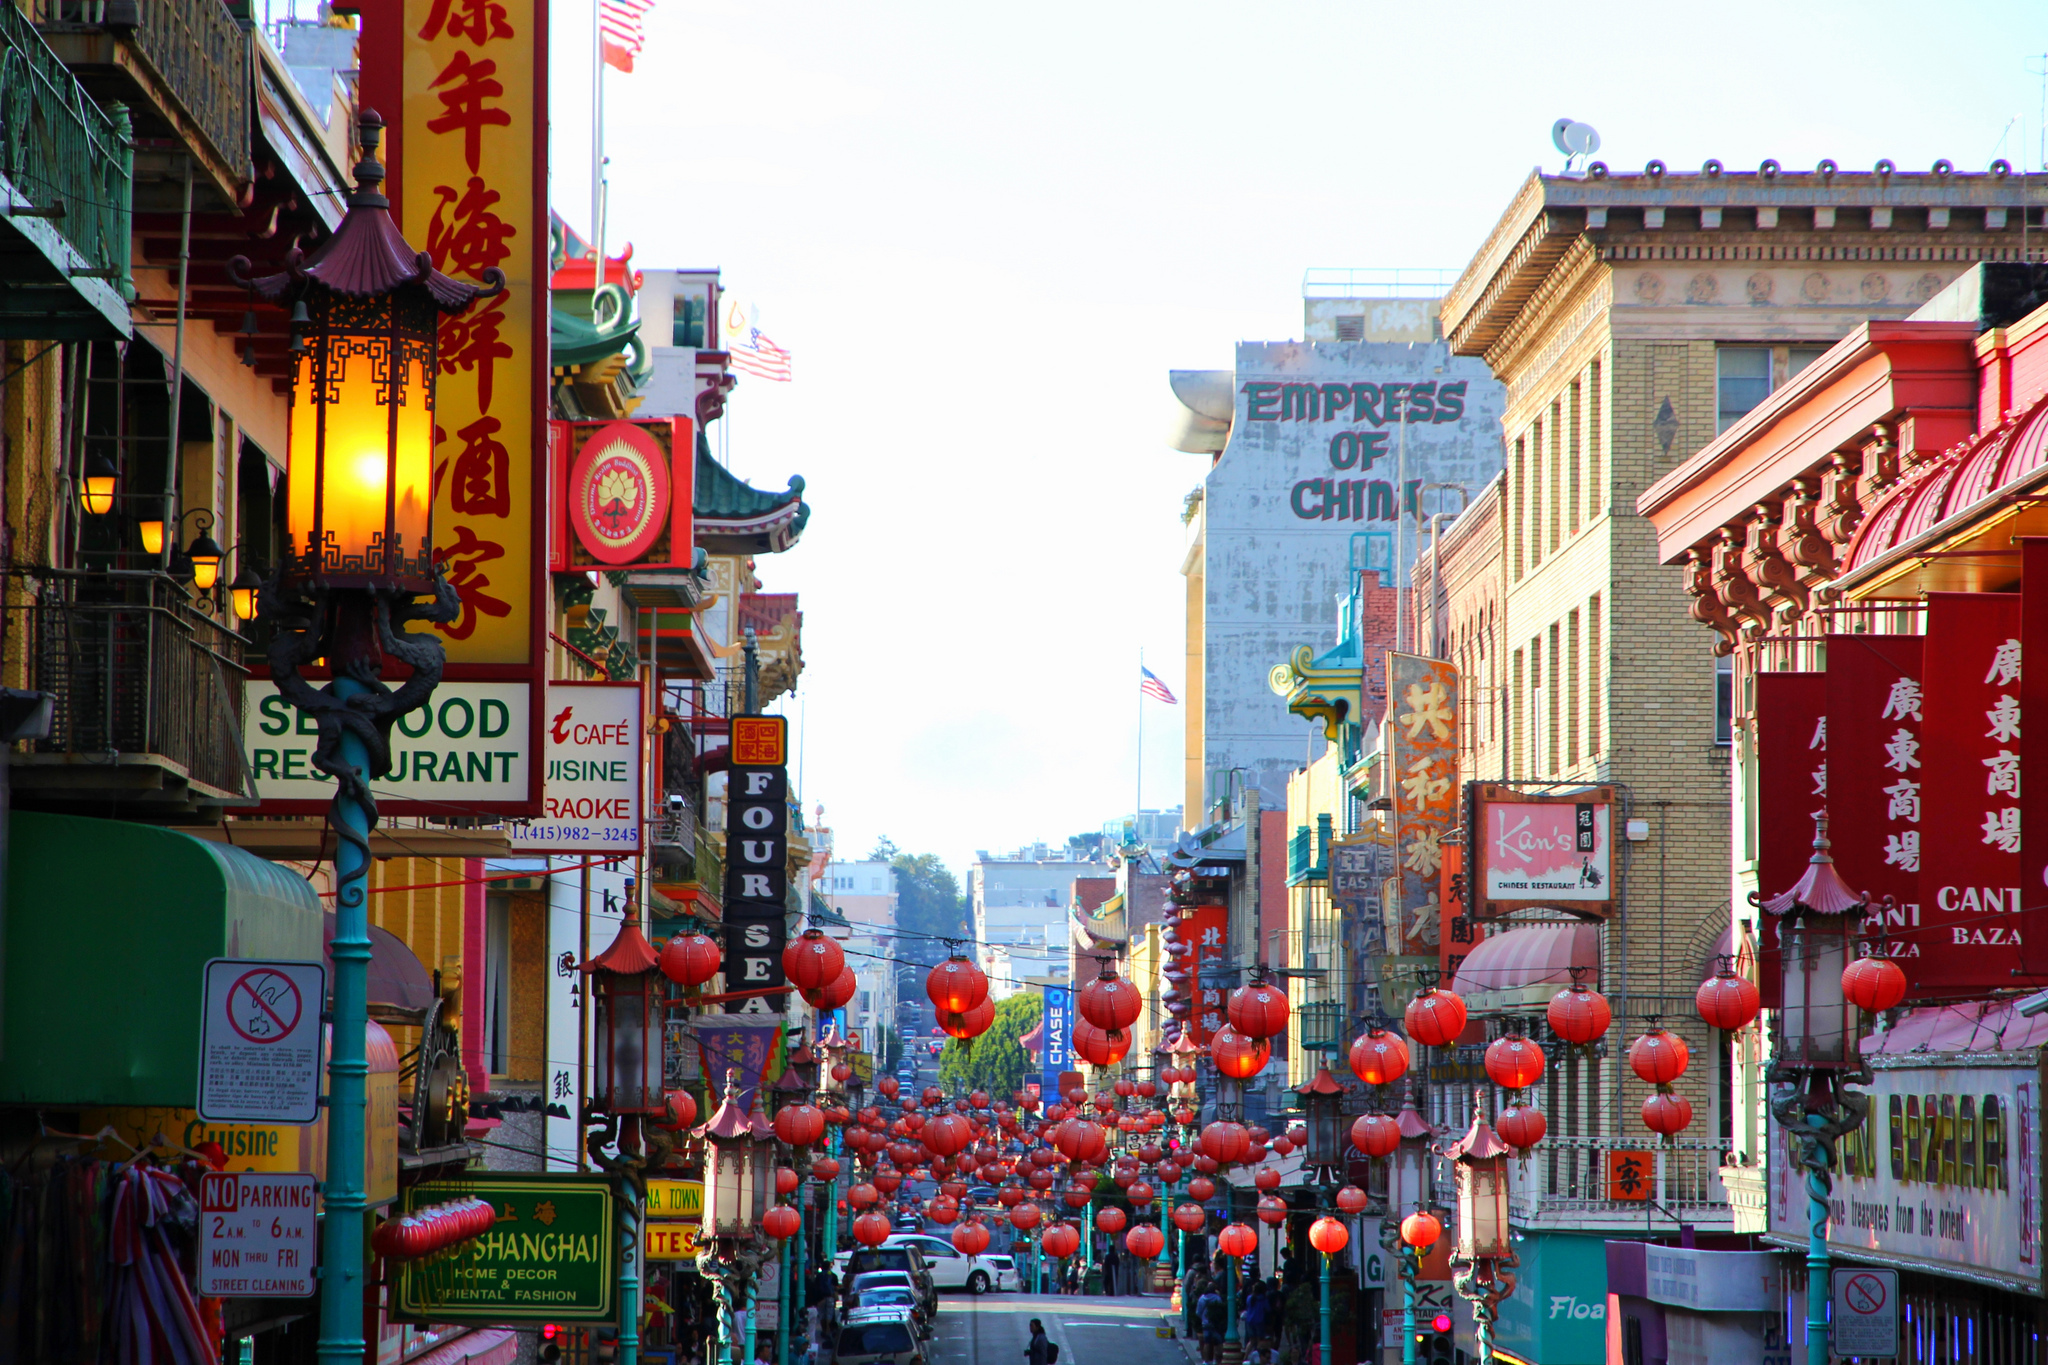 Things to do in Chinatown